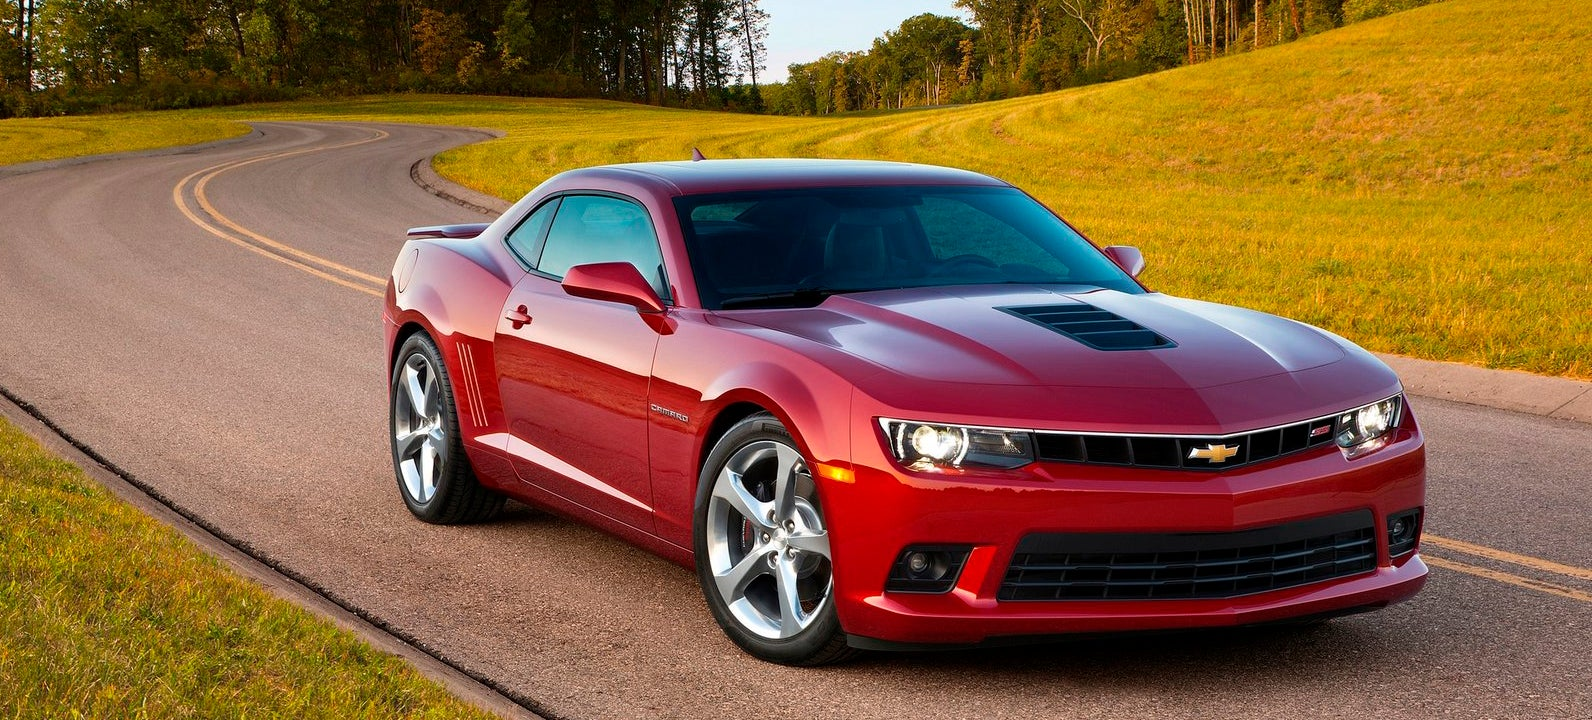 The Redesigned 2016 Chevrolet Camaro Won't Look Much Different